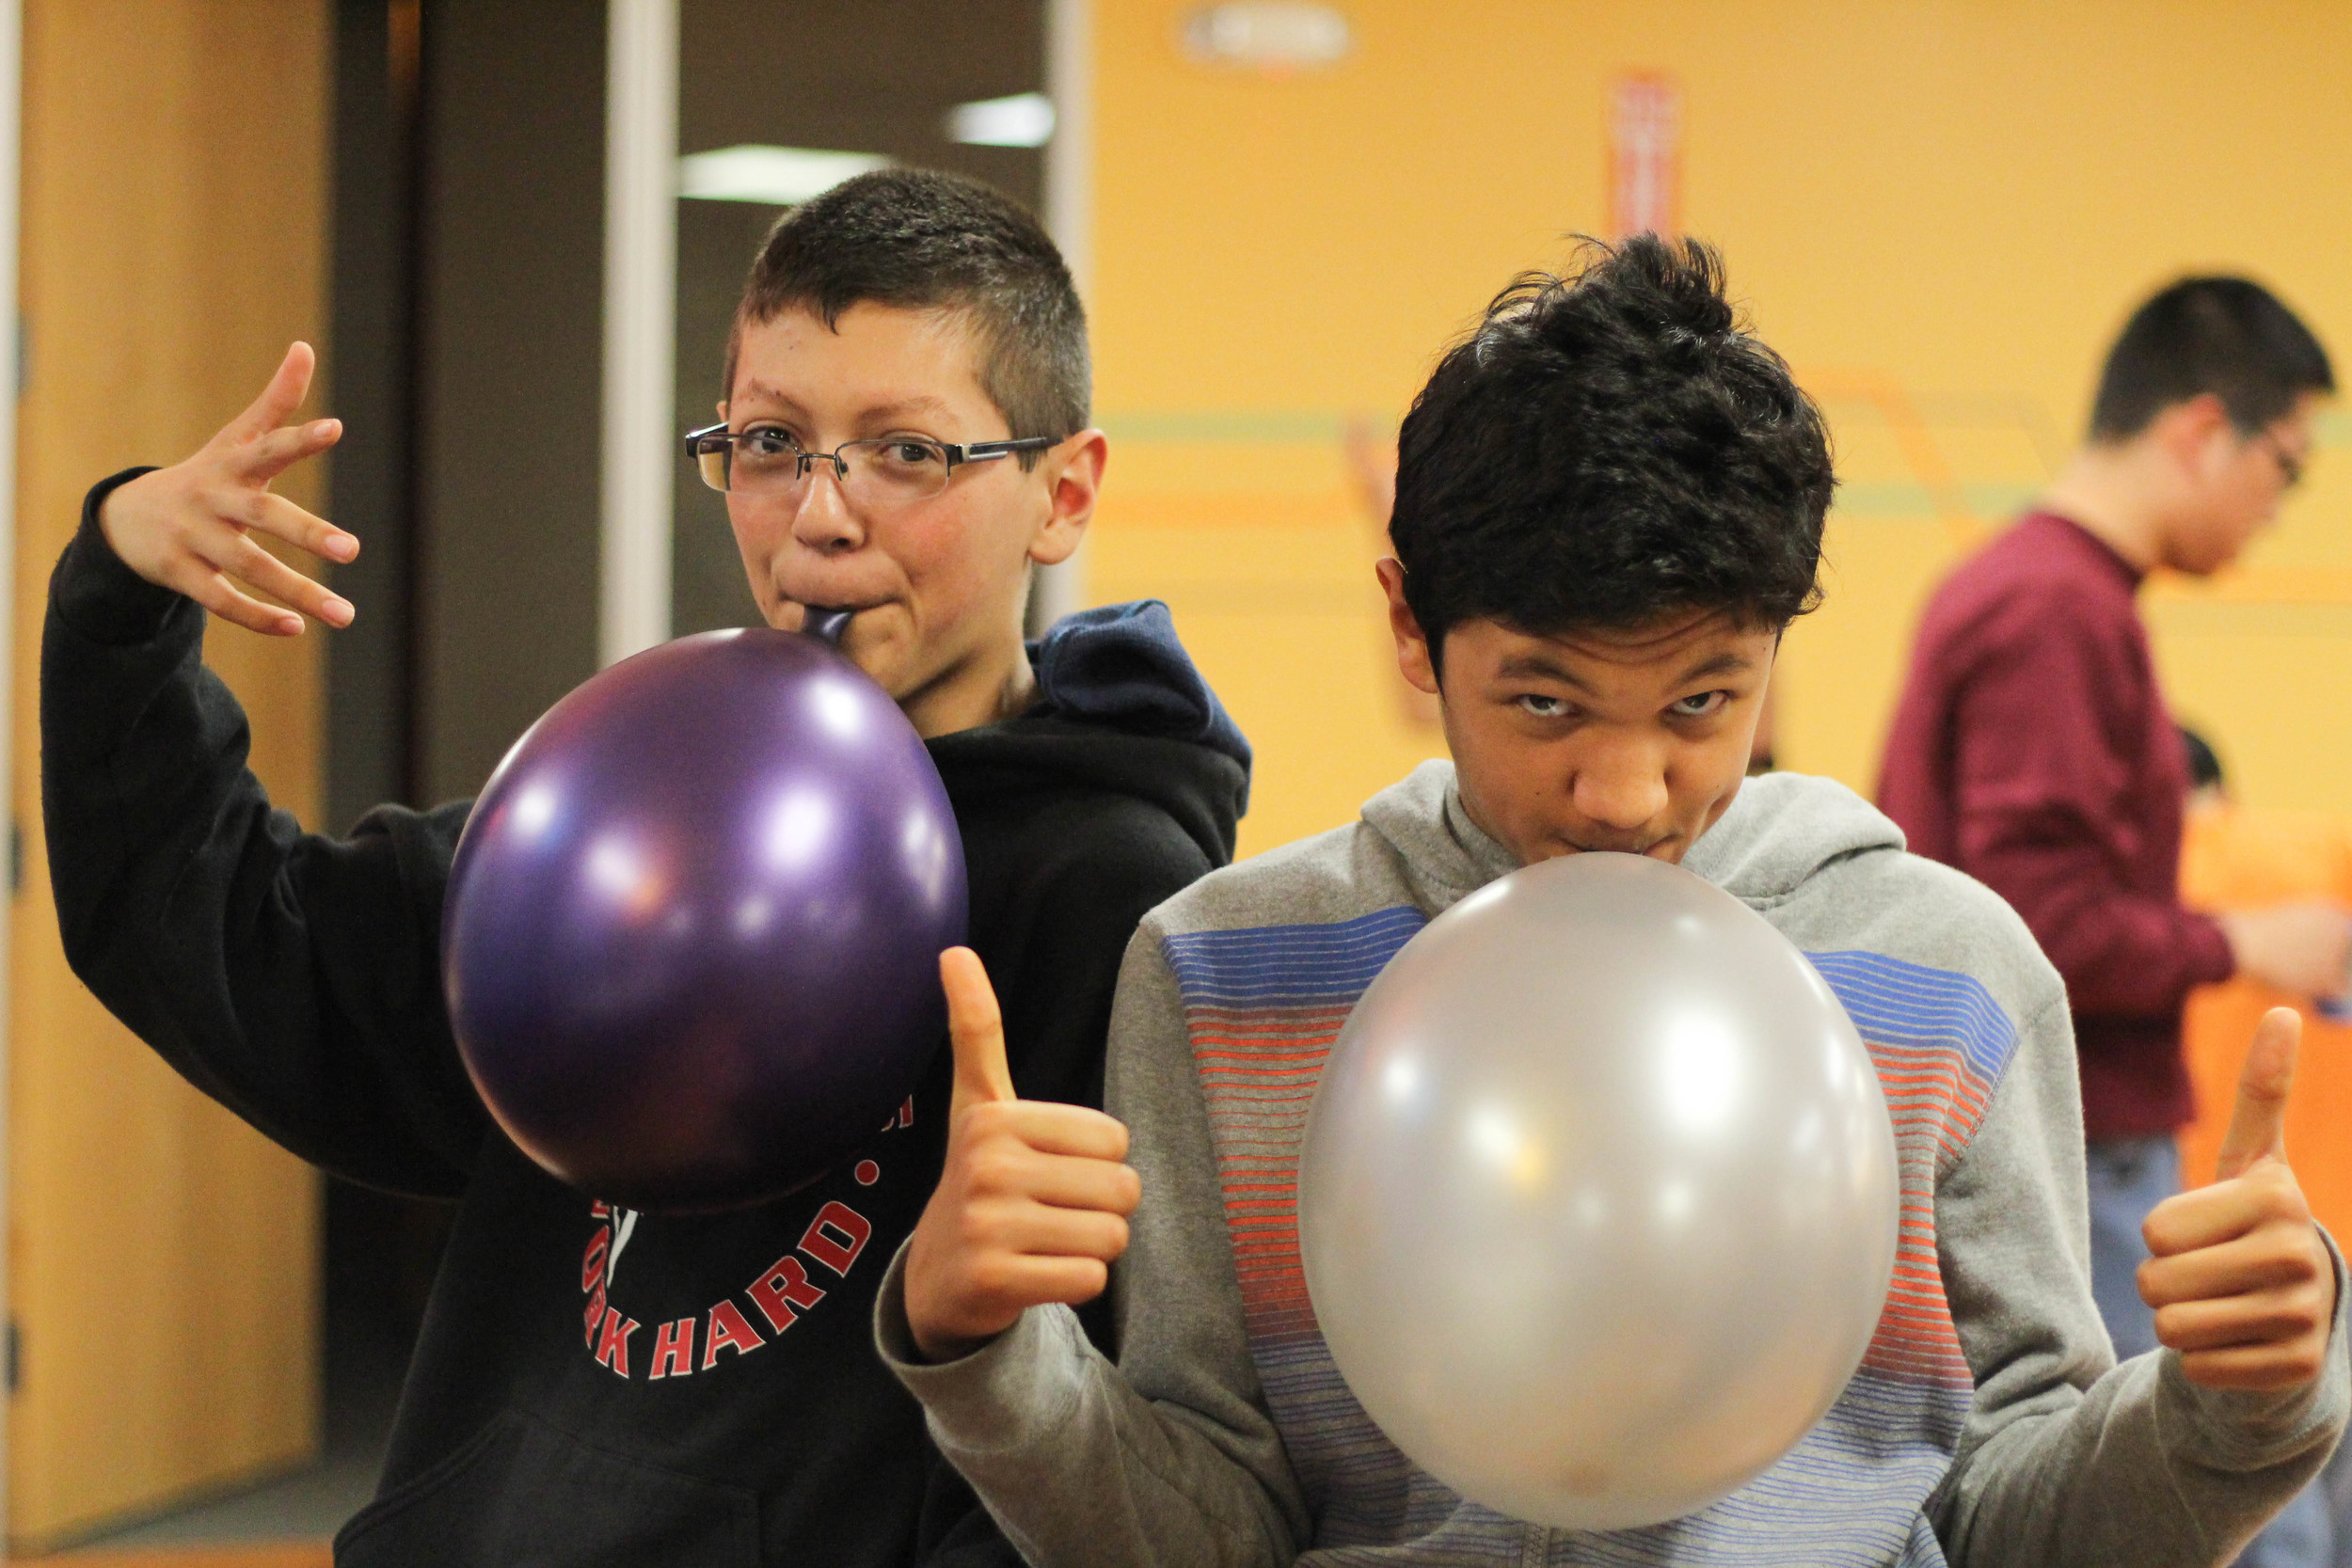 Afterwards, we played a bunch of balloon games in the gymand in our middle school room! The boys were particularly helpful in preparing allthe balloons for us. Thanks guys!